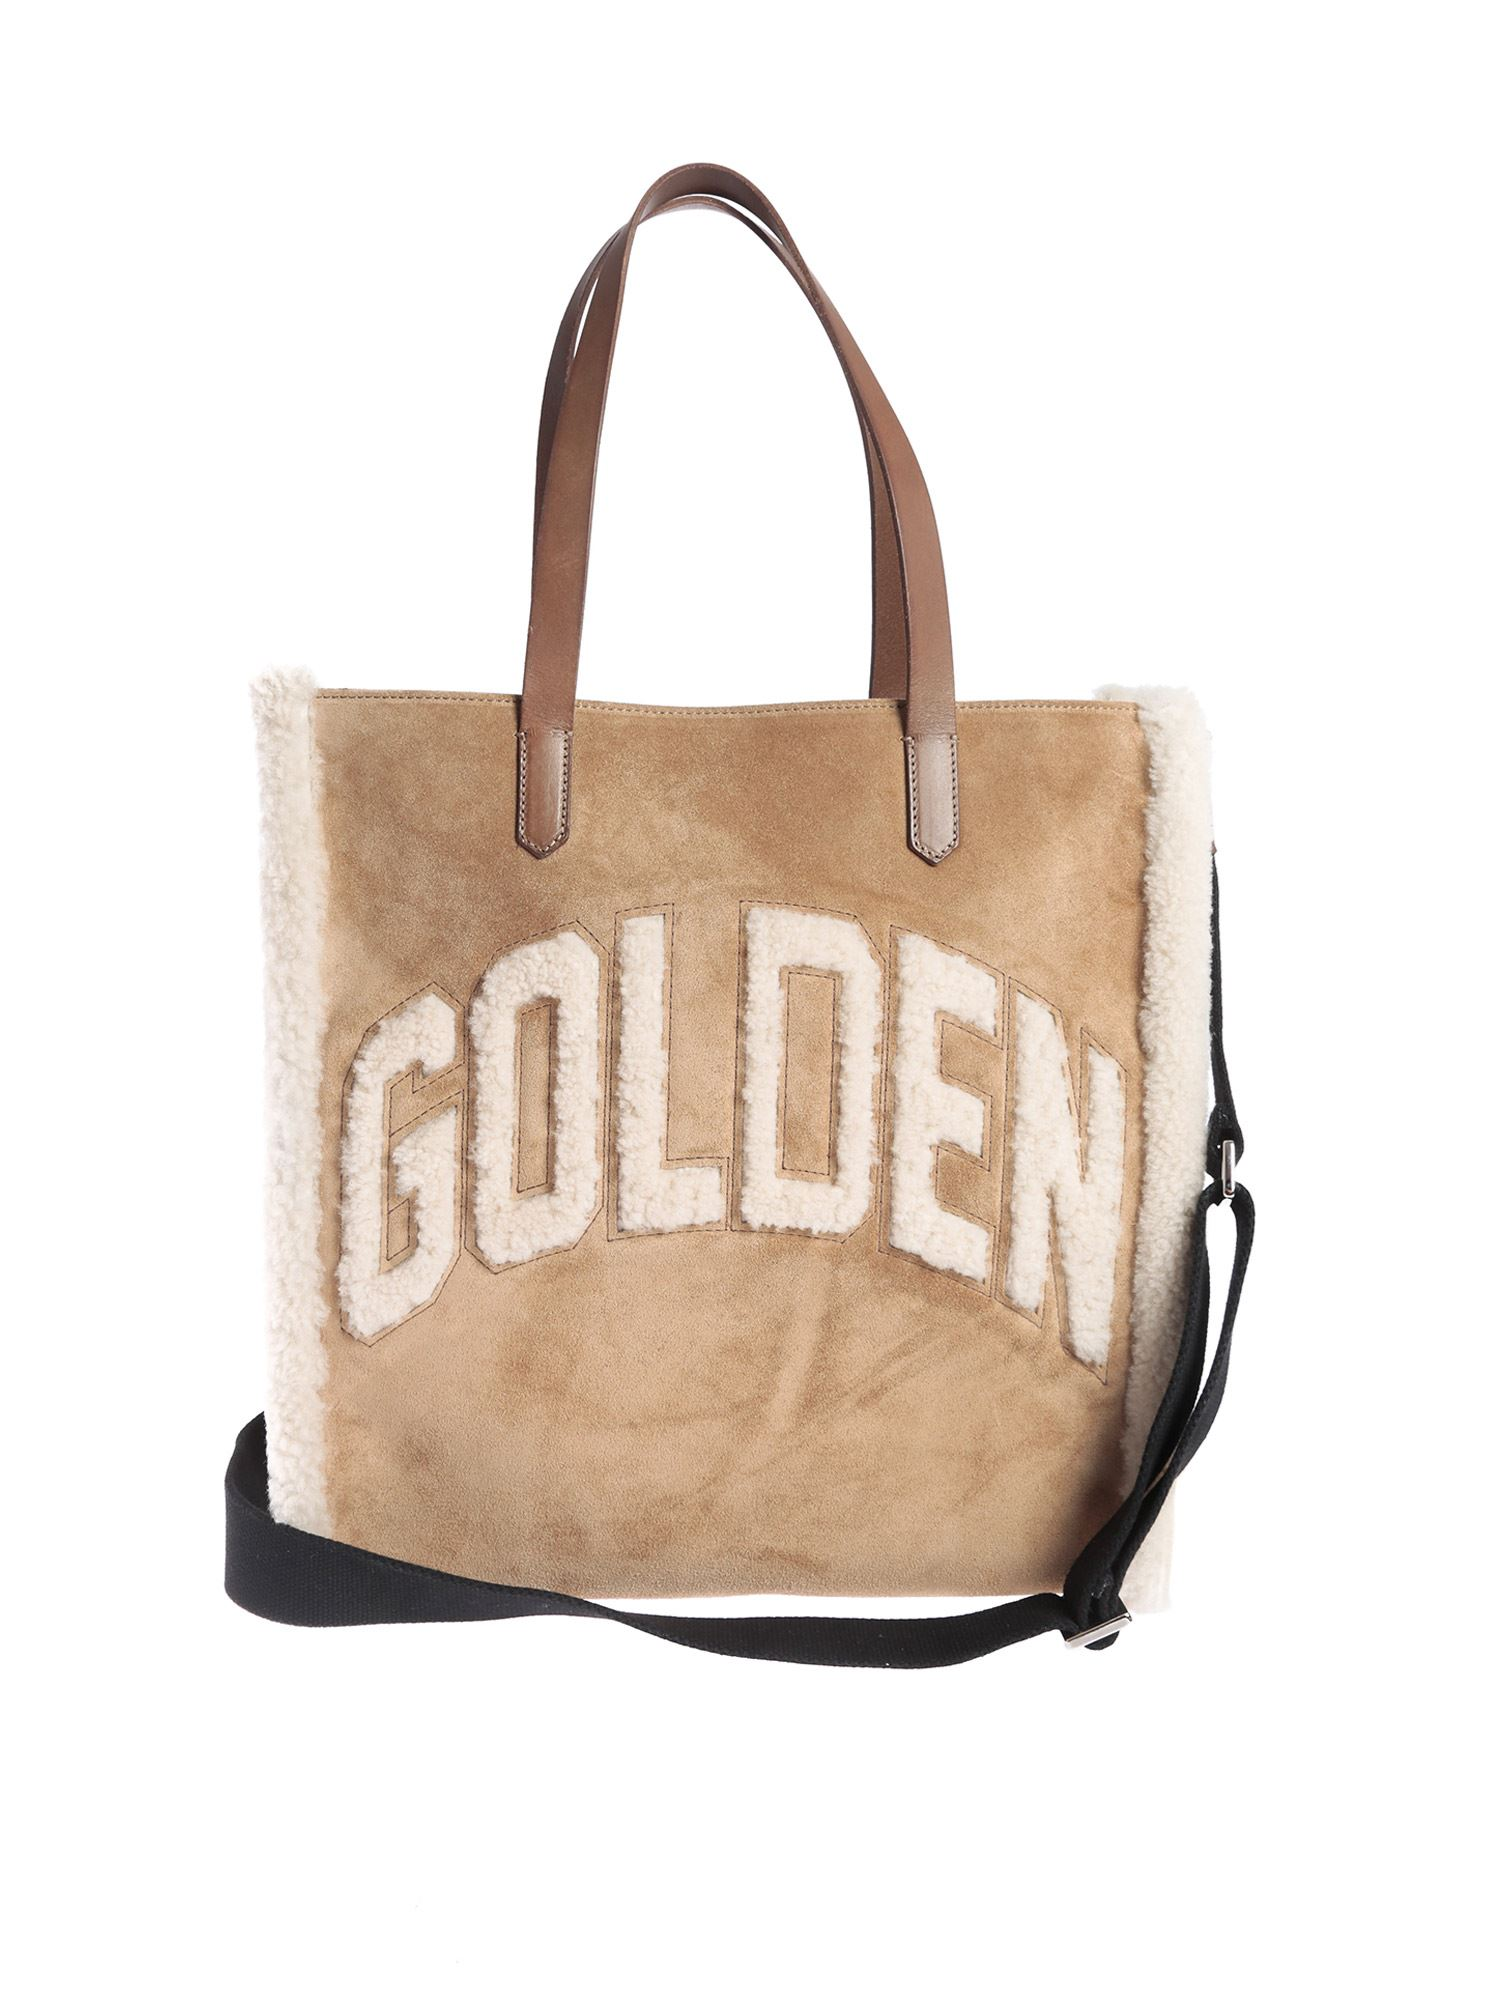 Golden Goose CALIFORNIA BAG IN CAMEL COLOR